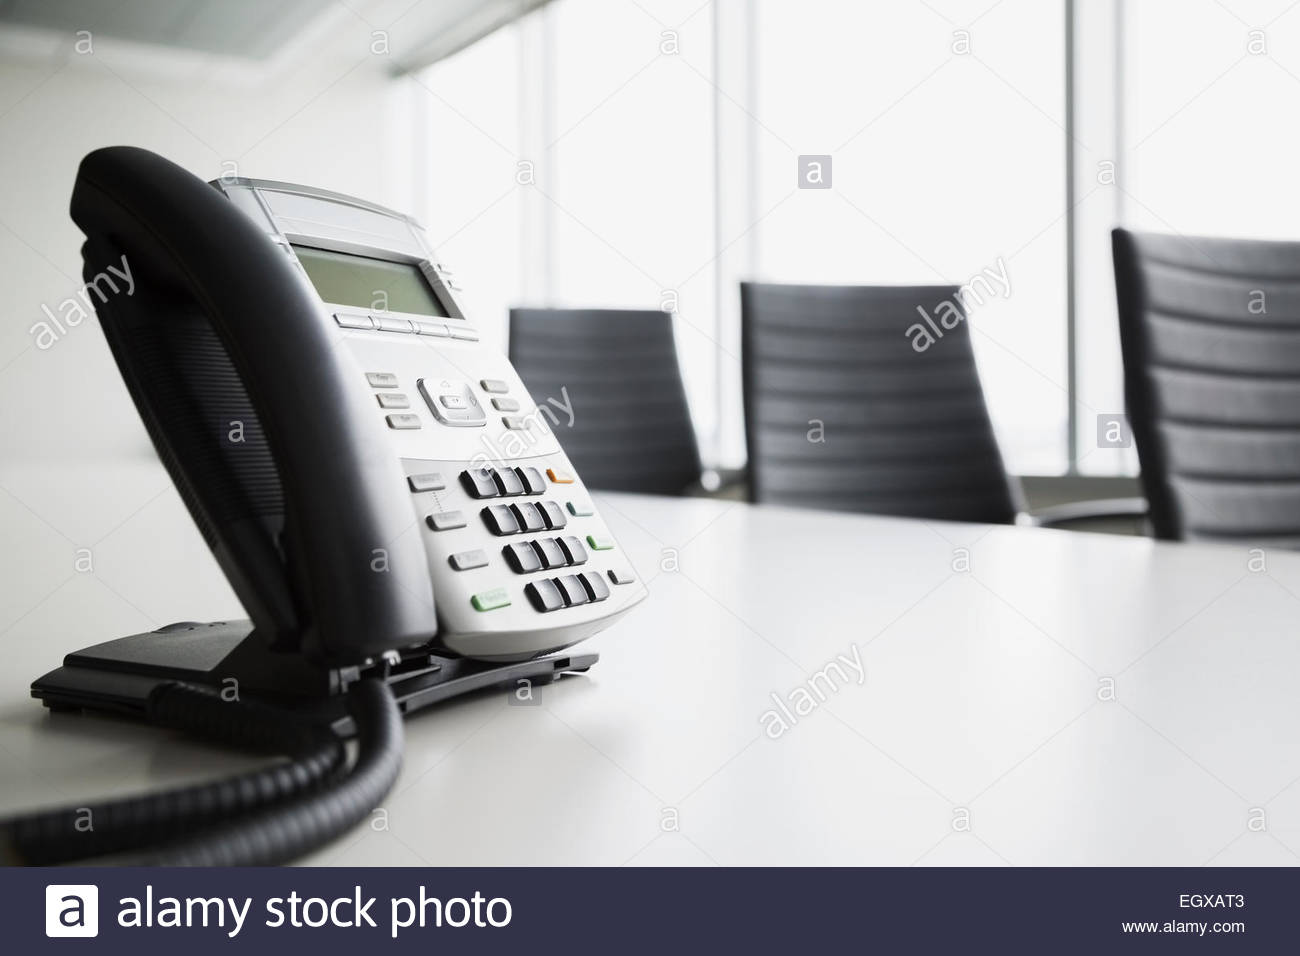 Conference telephone on empty conference room table - Stock Image